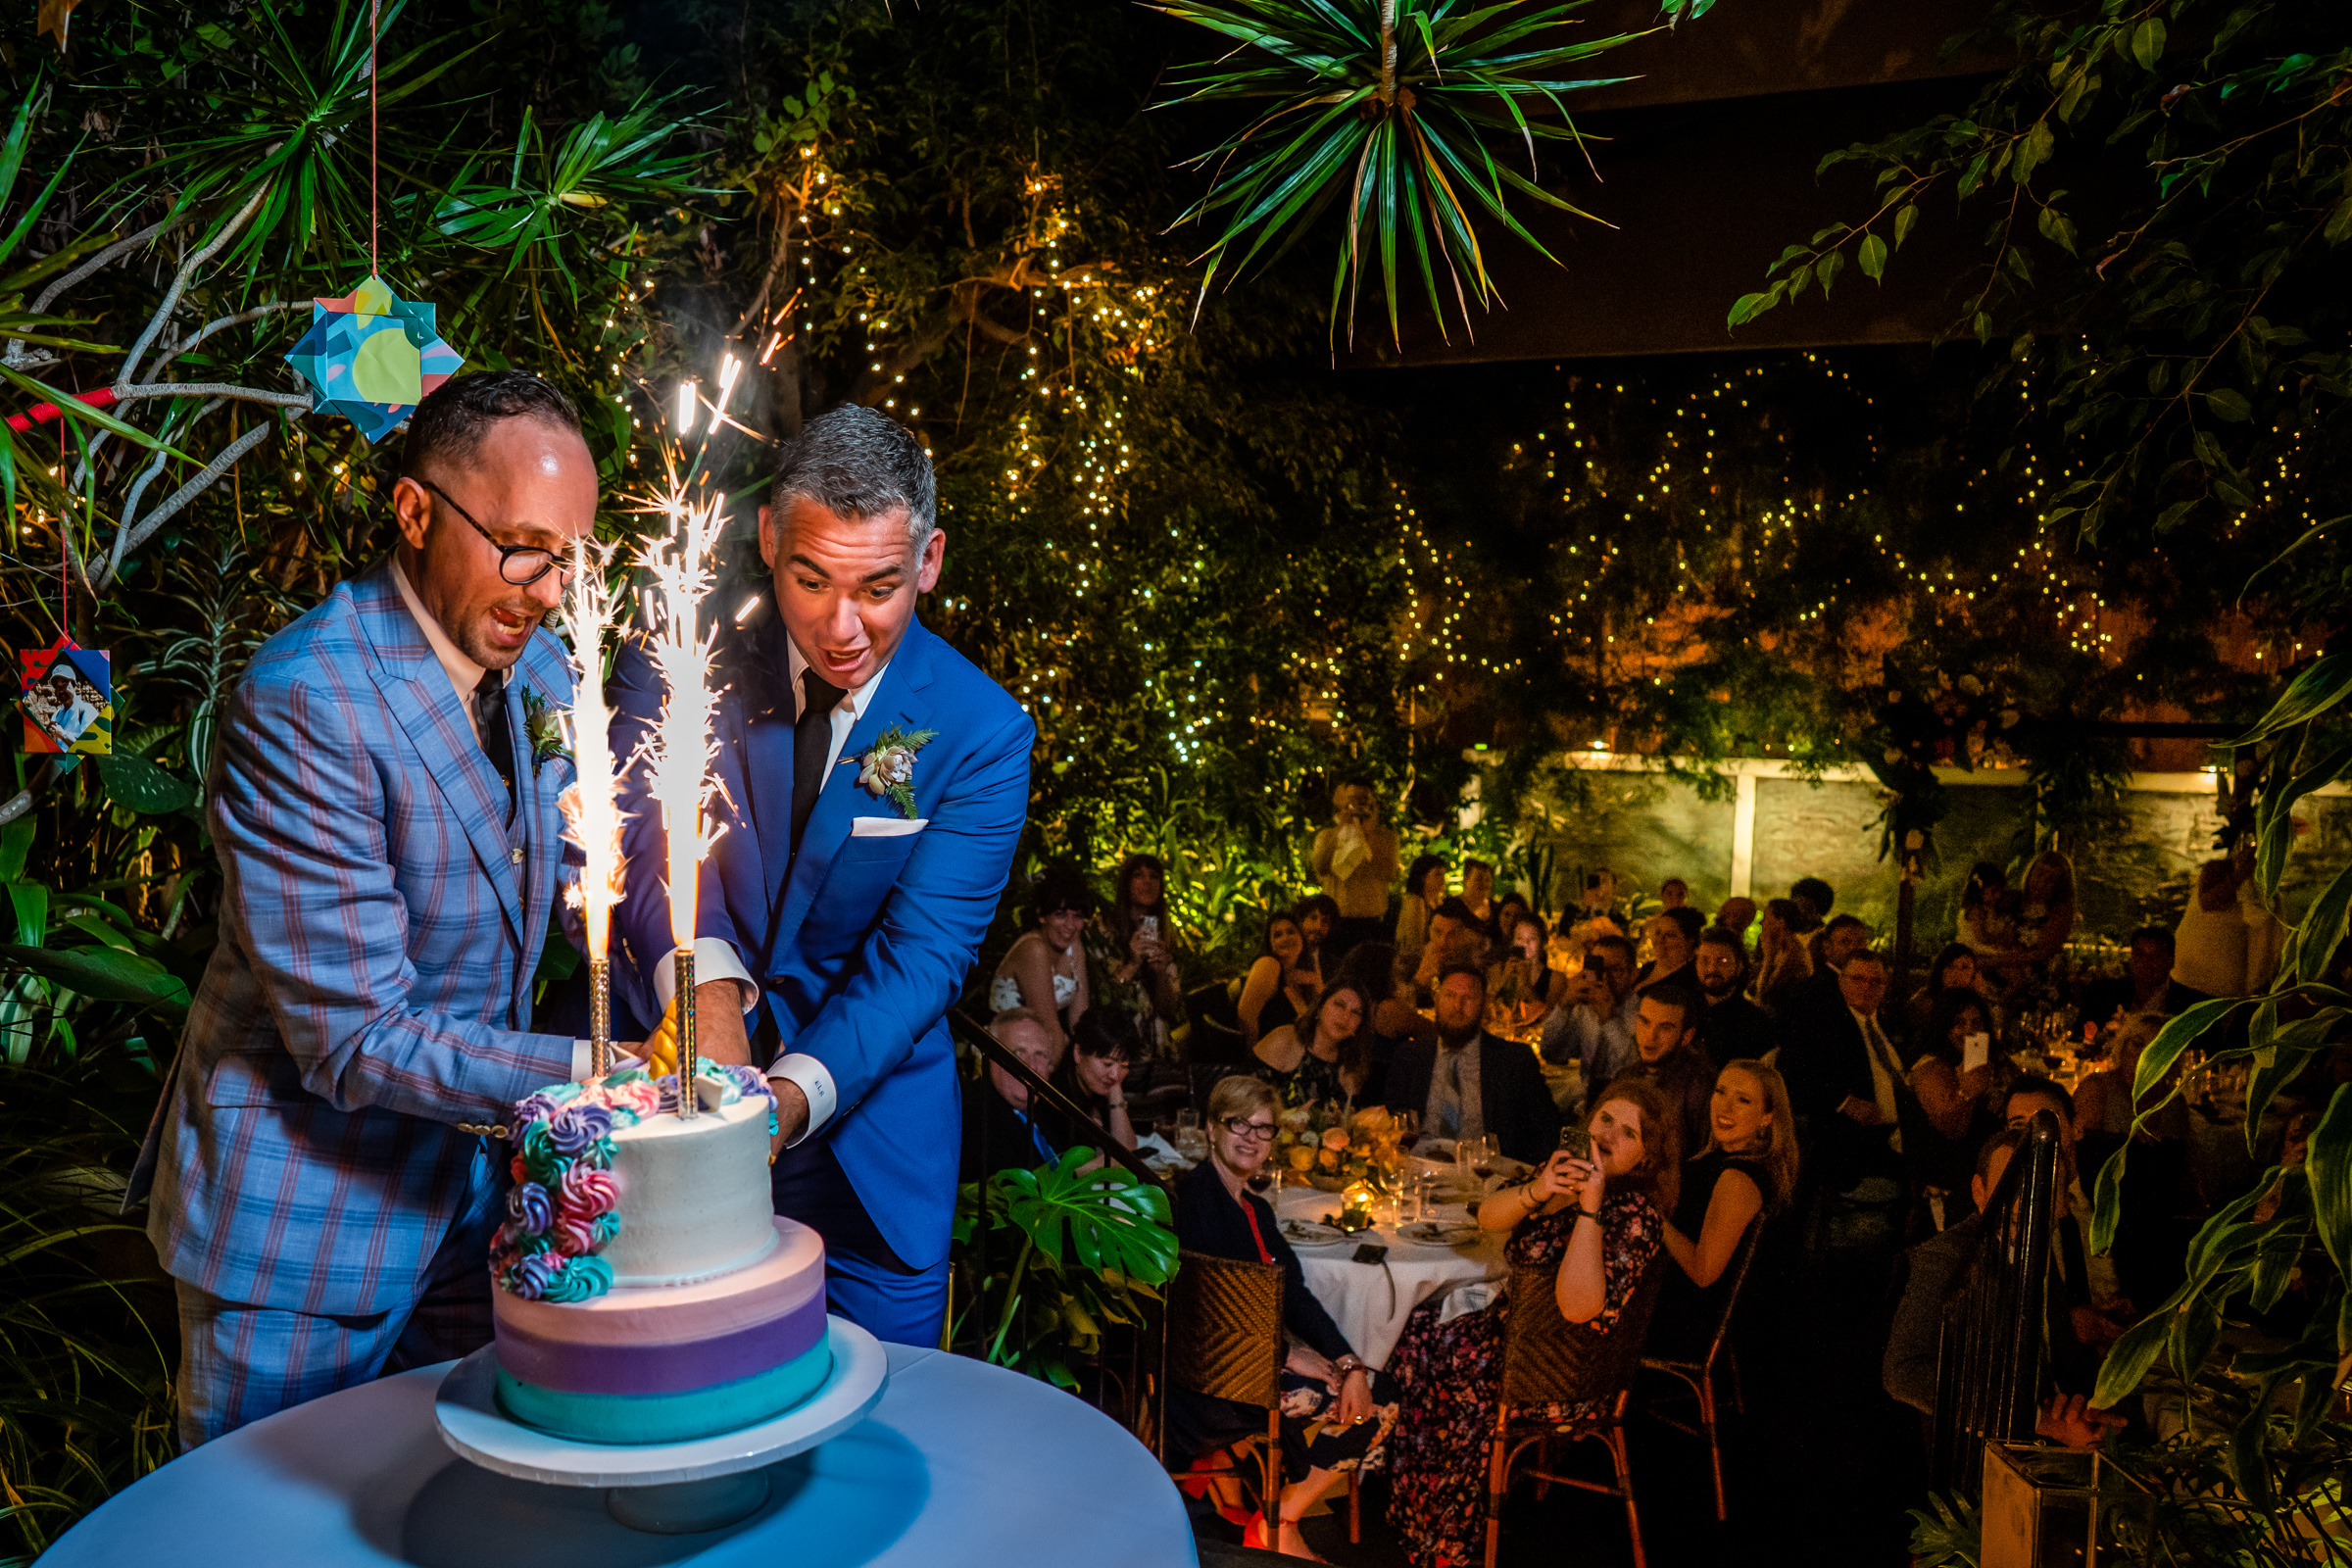 grooms-try-to-cut-cake-with-sparklers-photo-by-bee-two-sweet